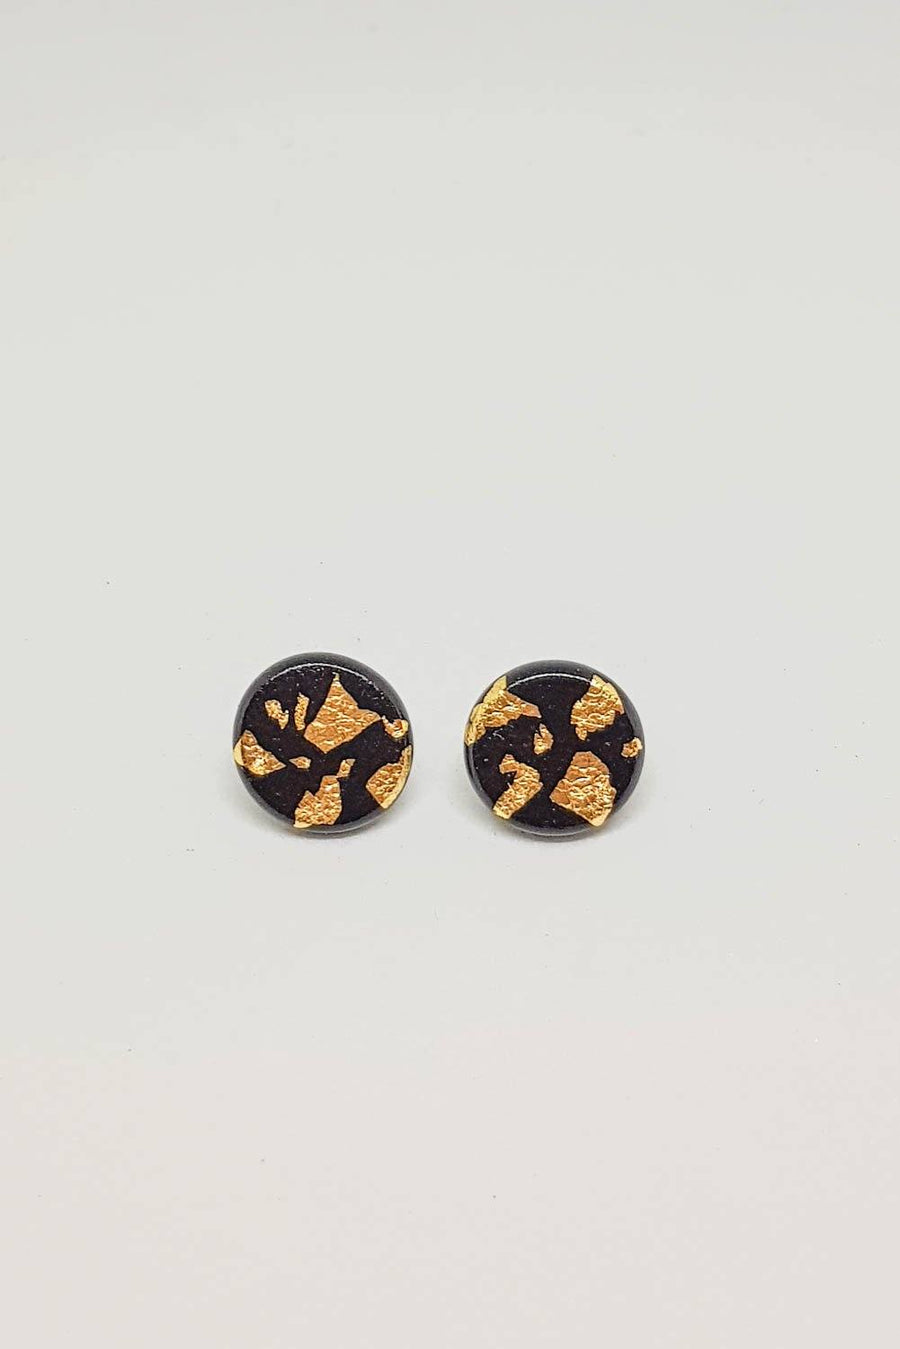 Studs | Black With Gold 15 mm Earrings Gray.Label